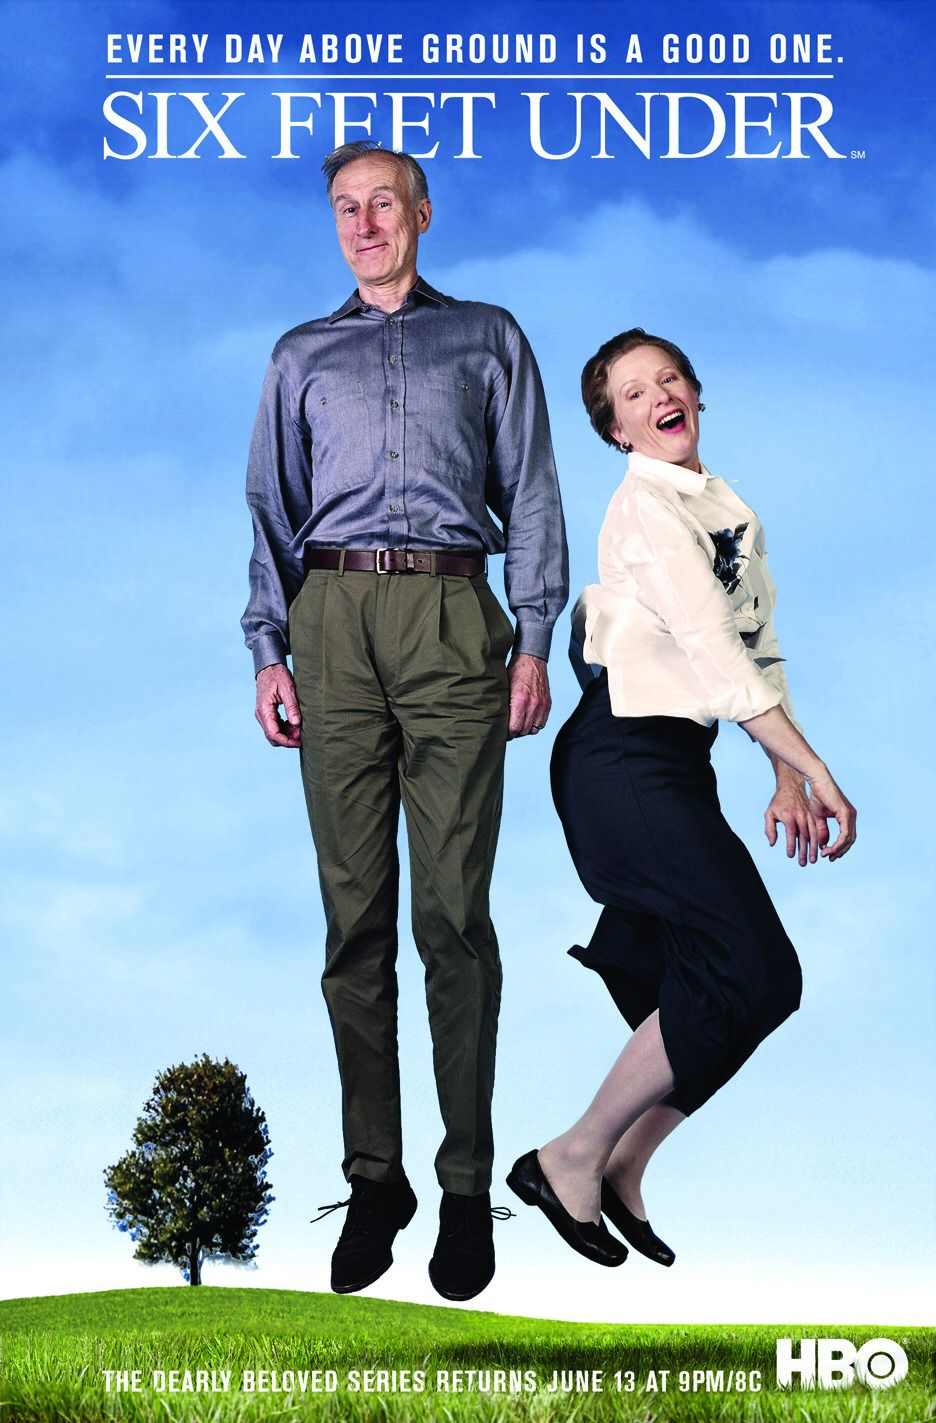 Six Feet Under (#8 of 9): Extra Large Movie Poster Image ...